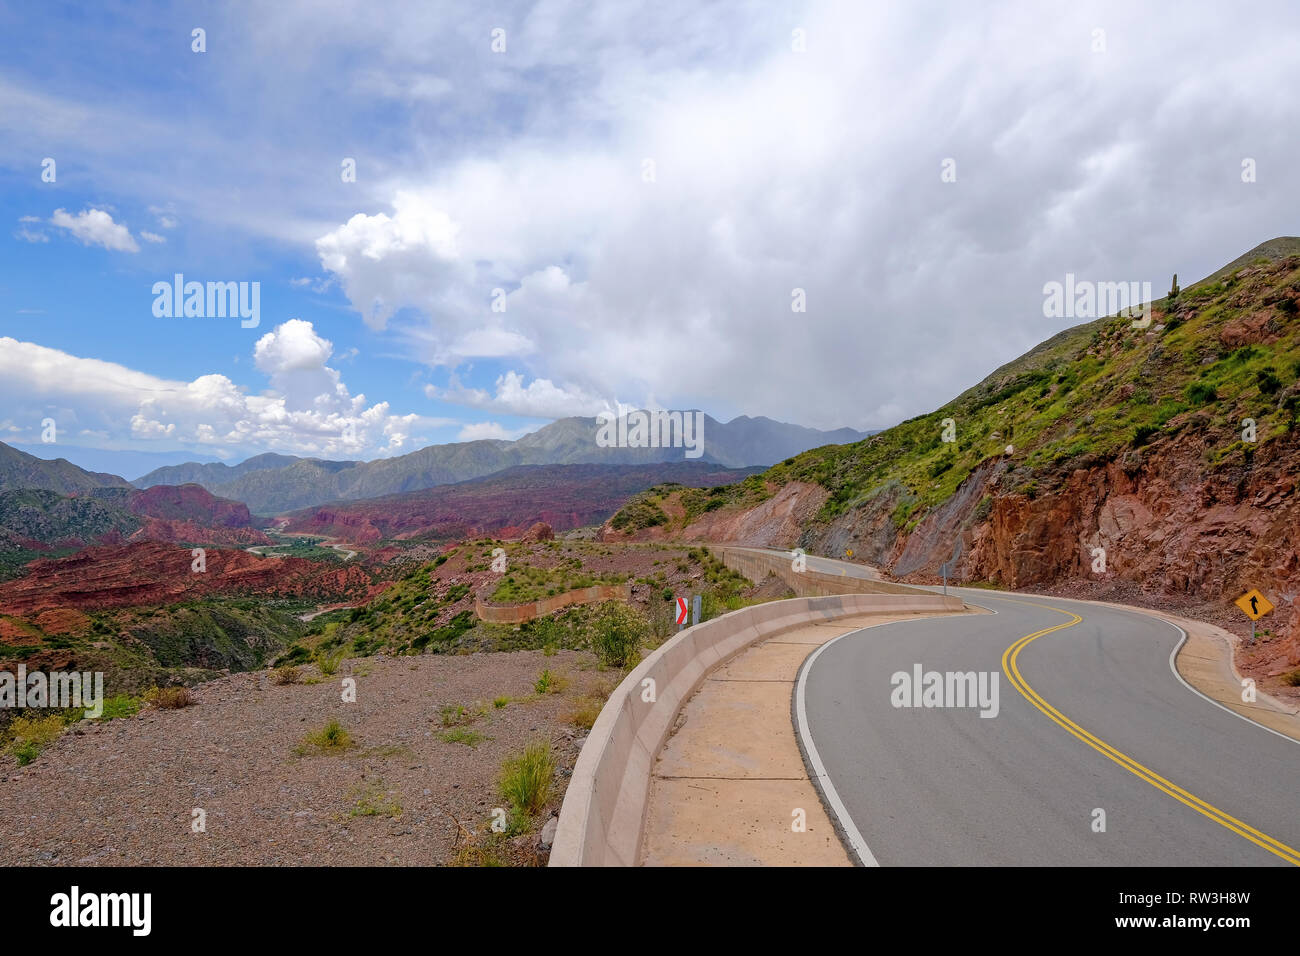 The famous Road Ruta 40 trough the beautiful canyon of the Cuesta de Miranda, La Rioja, Argentina - Stock Image